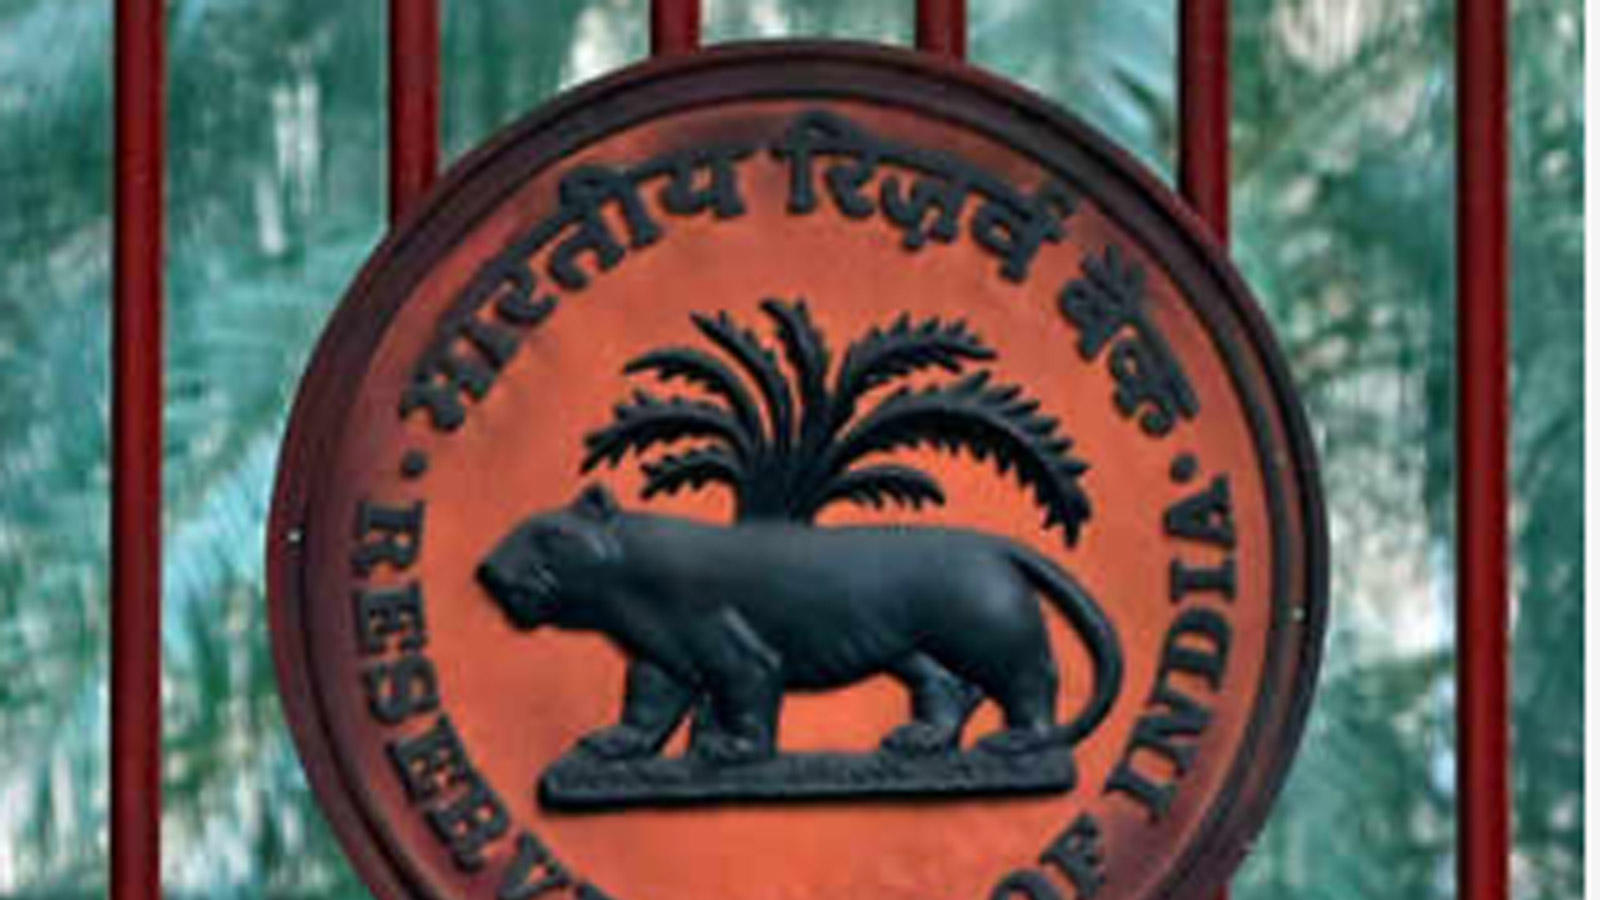 rbi-goes-for-fourth-straight-rate-cut-reduces-repo-rate-by-35-basis-points